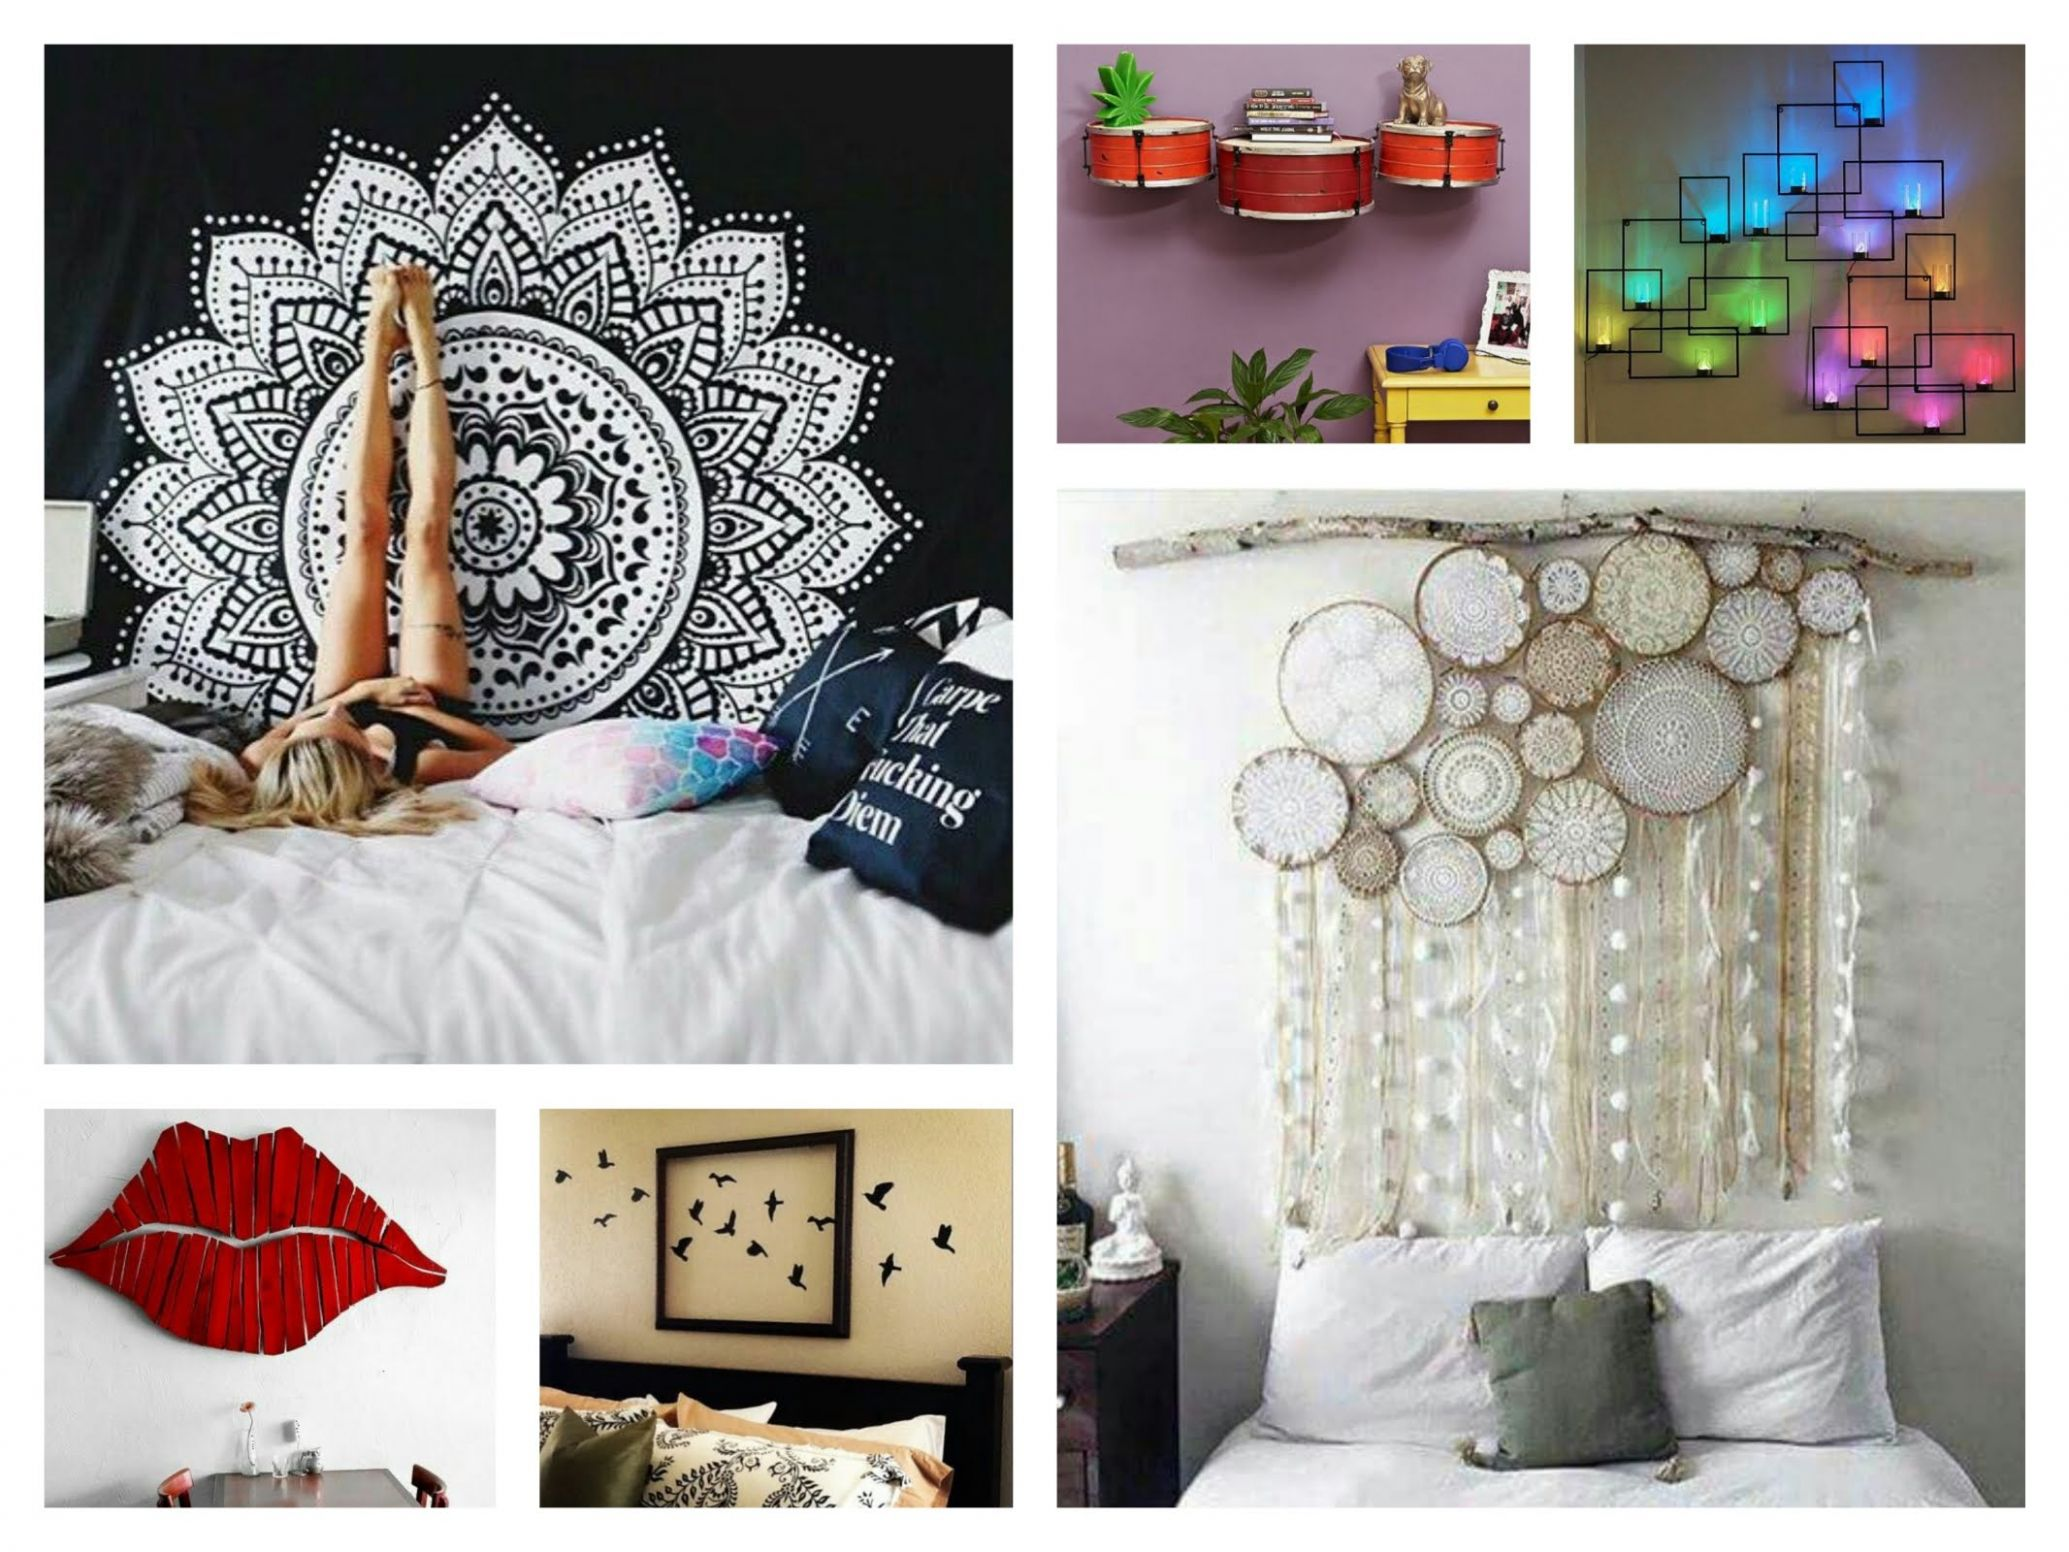 creative wall decor ideas diy room decorations youtube in creative ...